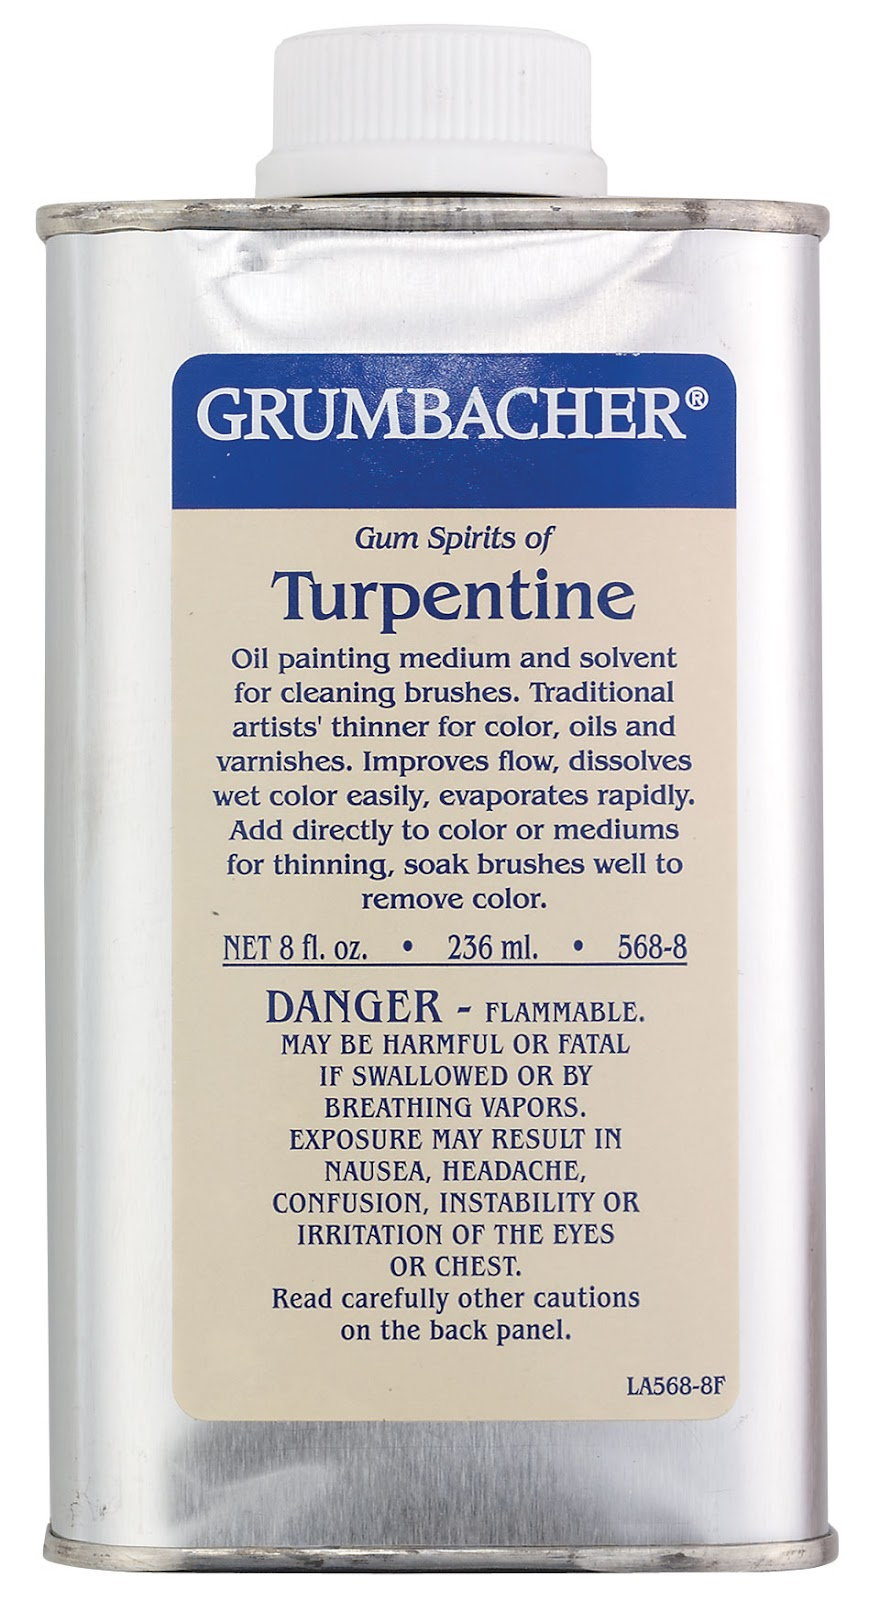 Studio Safety Pt. 2 – The Facts About Turpentine